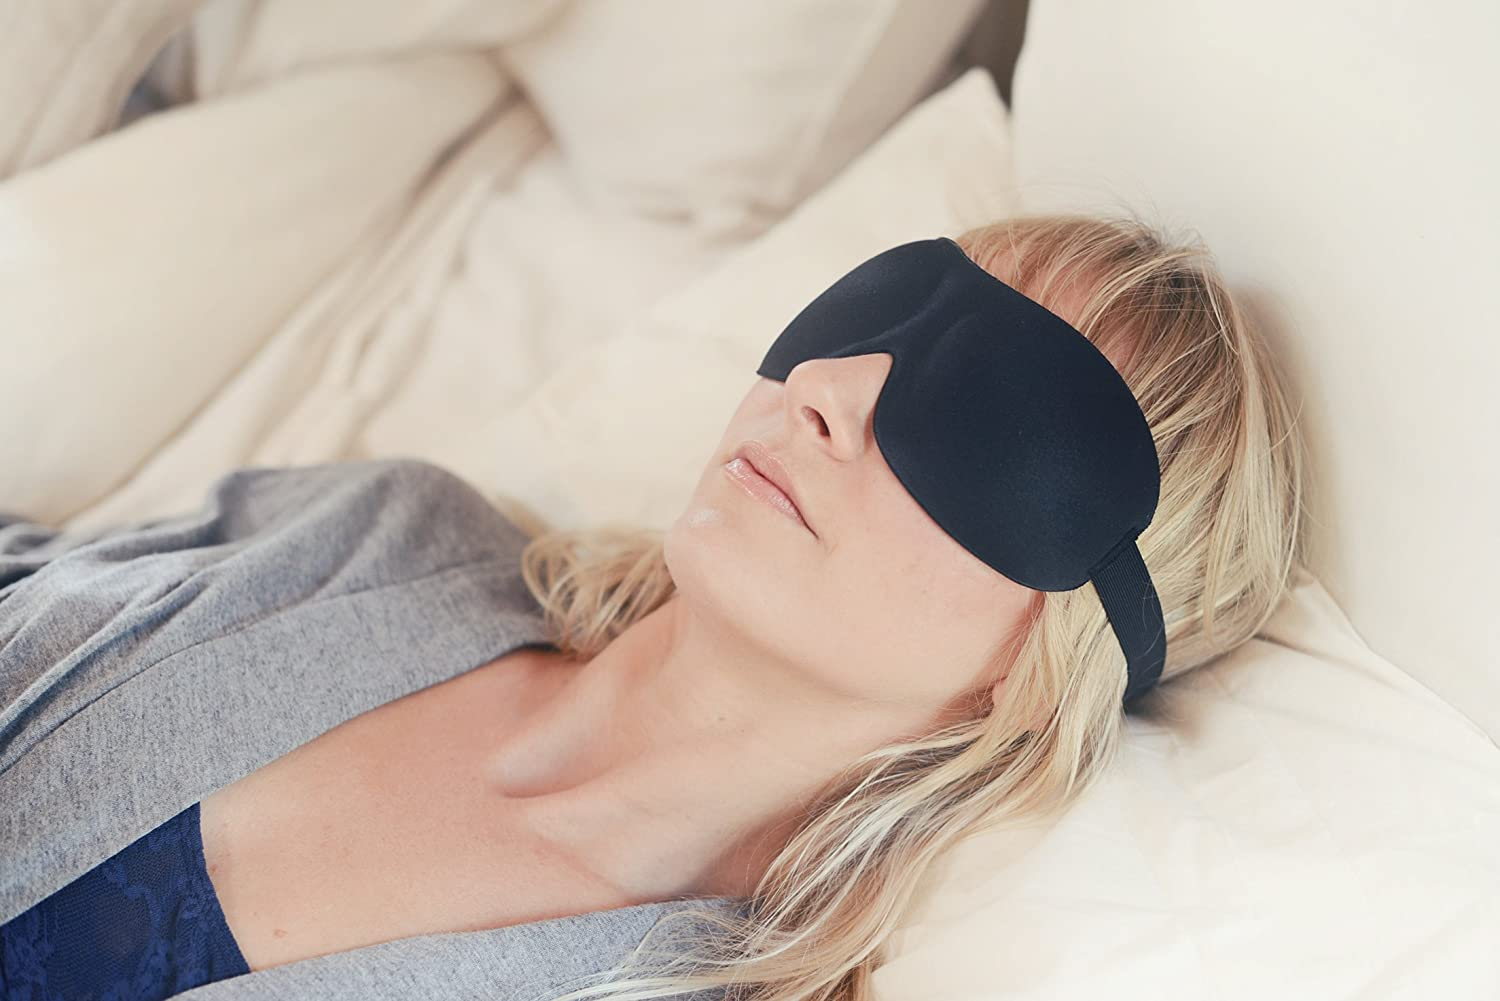 #1 Rated Patented Sleep Mask - Premium Quality Eye Mask with Contoured Shape By Nidra - Ultra Lightweight & Comfortable - Great for Travel, Shift Work, Meditation, Migraines - Sleep Satisfaction Guaranteed – Adjustable Head Straps - Sleep Anywhere Any